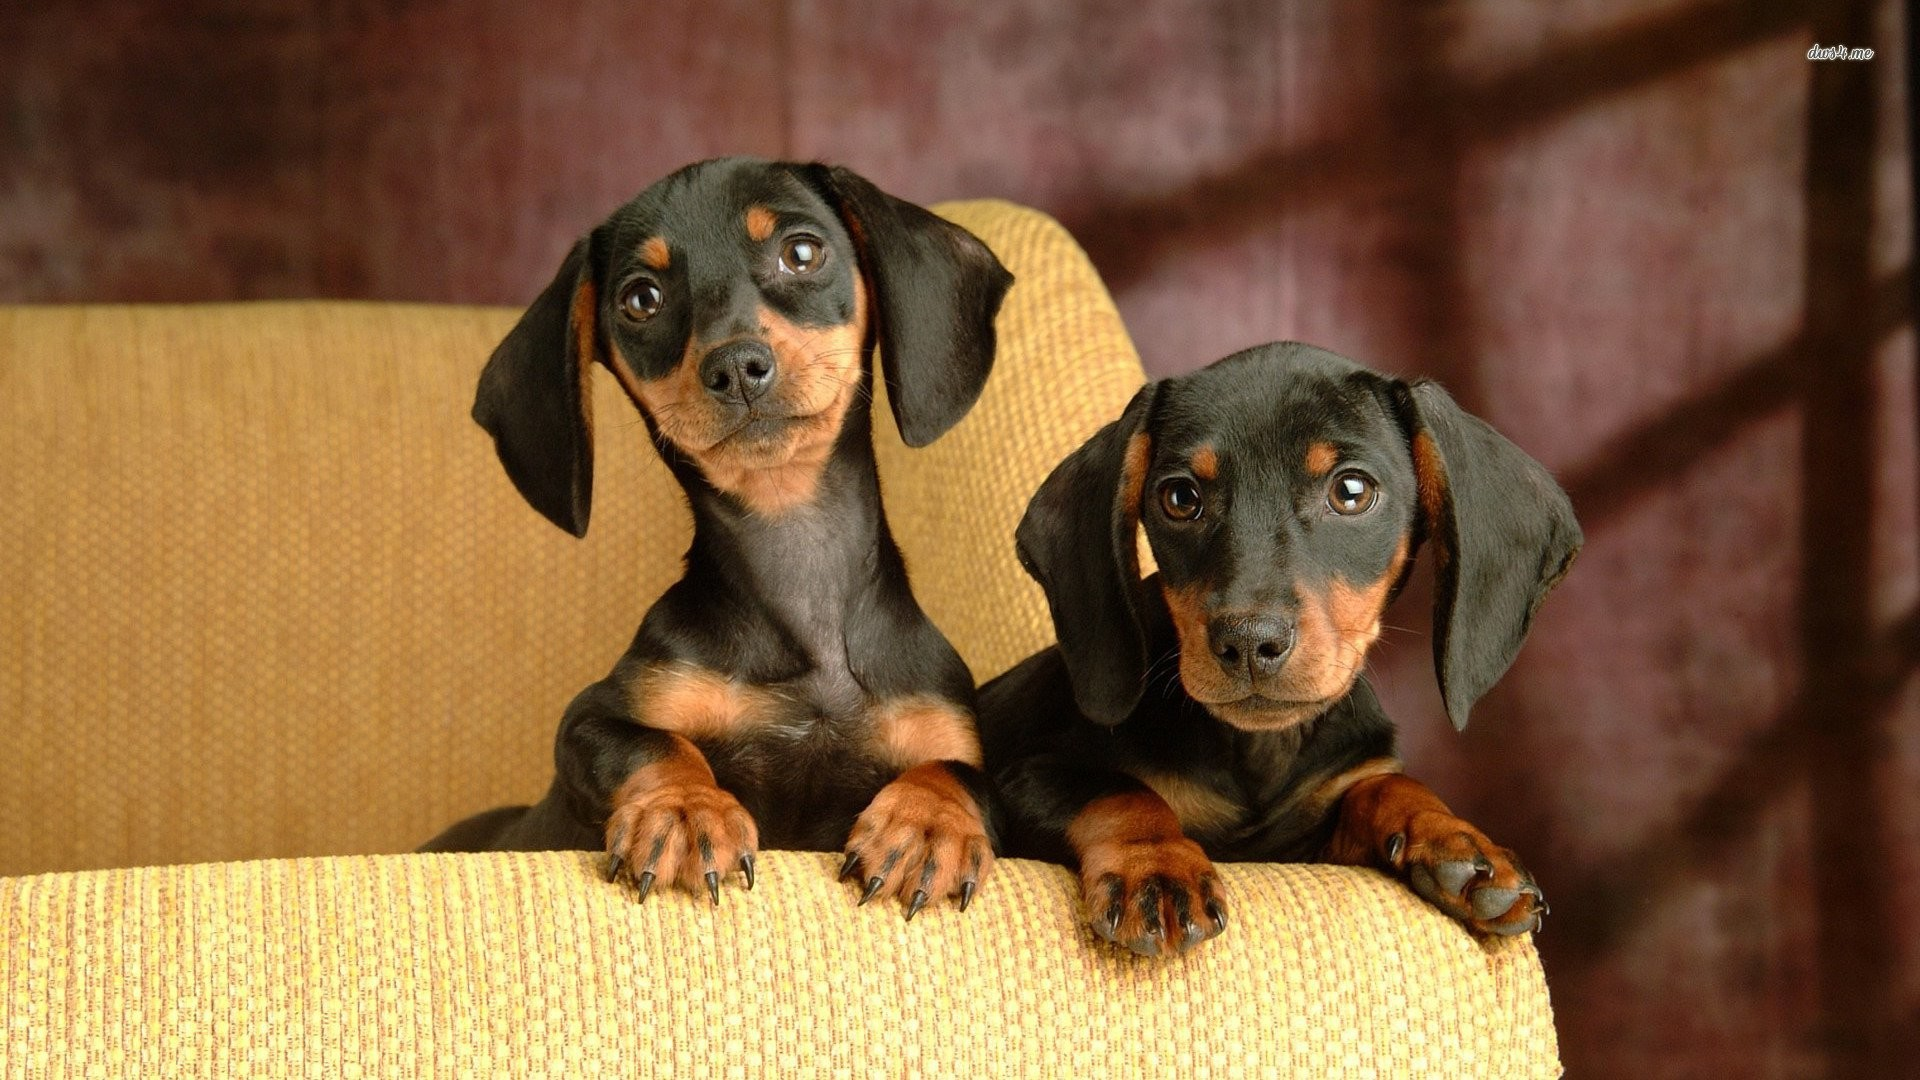 1920x1080 Dachshund Puppies 278546